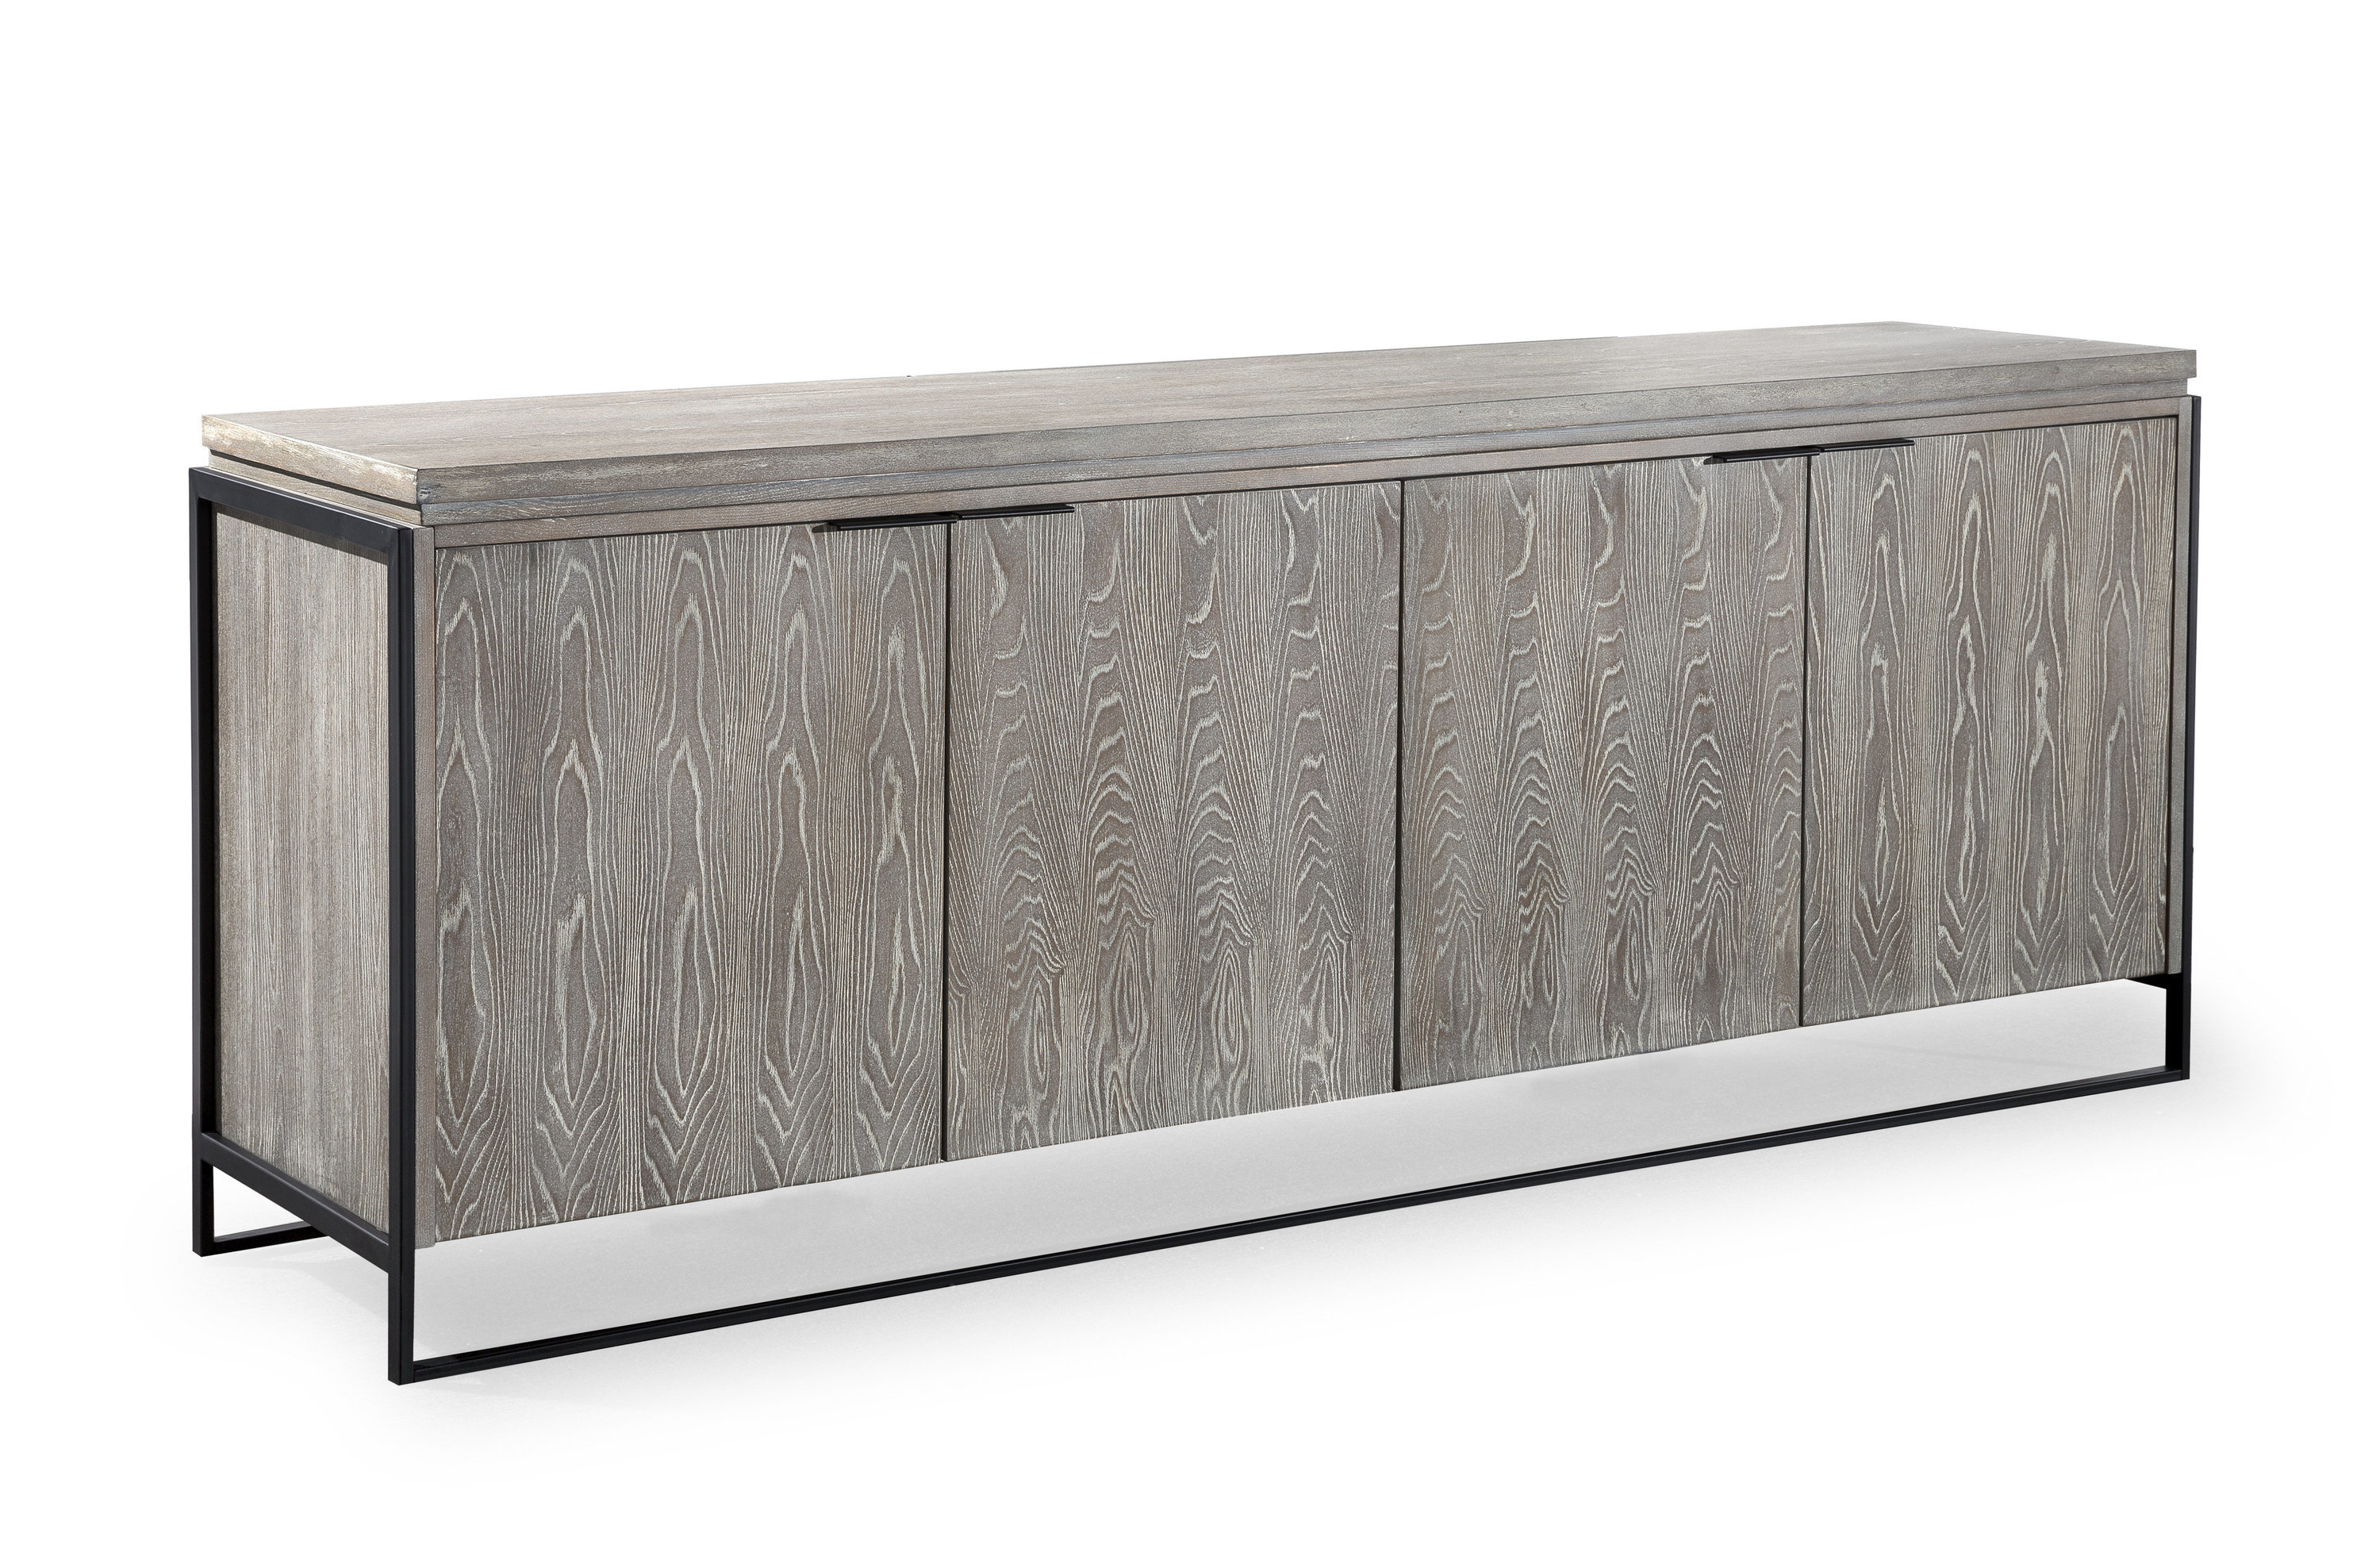 Sideboards & Buffet Tables | Joss & Main With Regard To Whitten Sideboards (View 12 of 20)